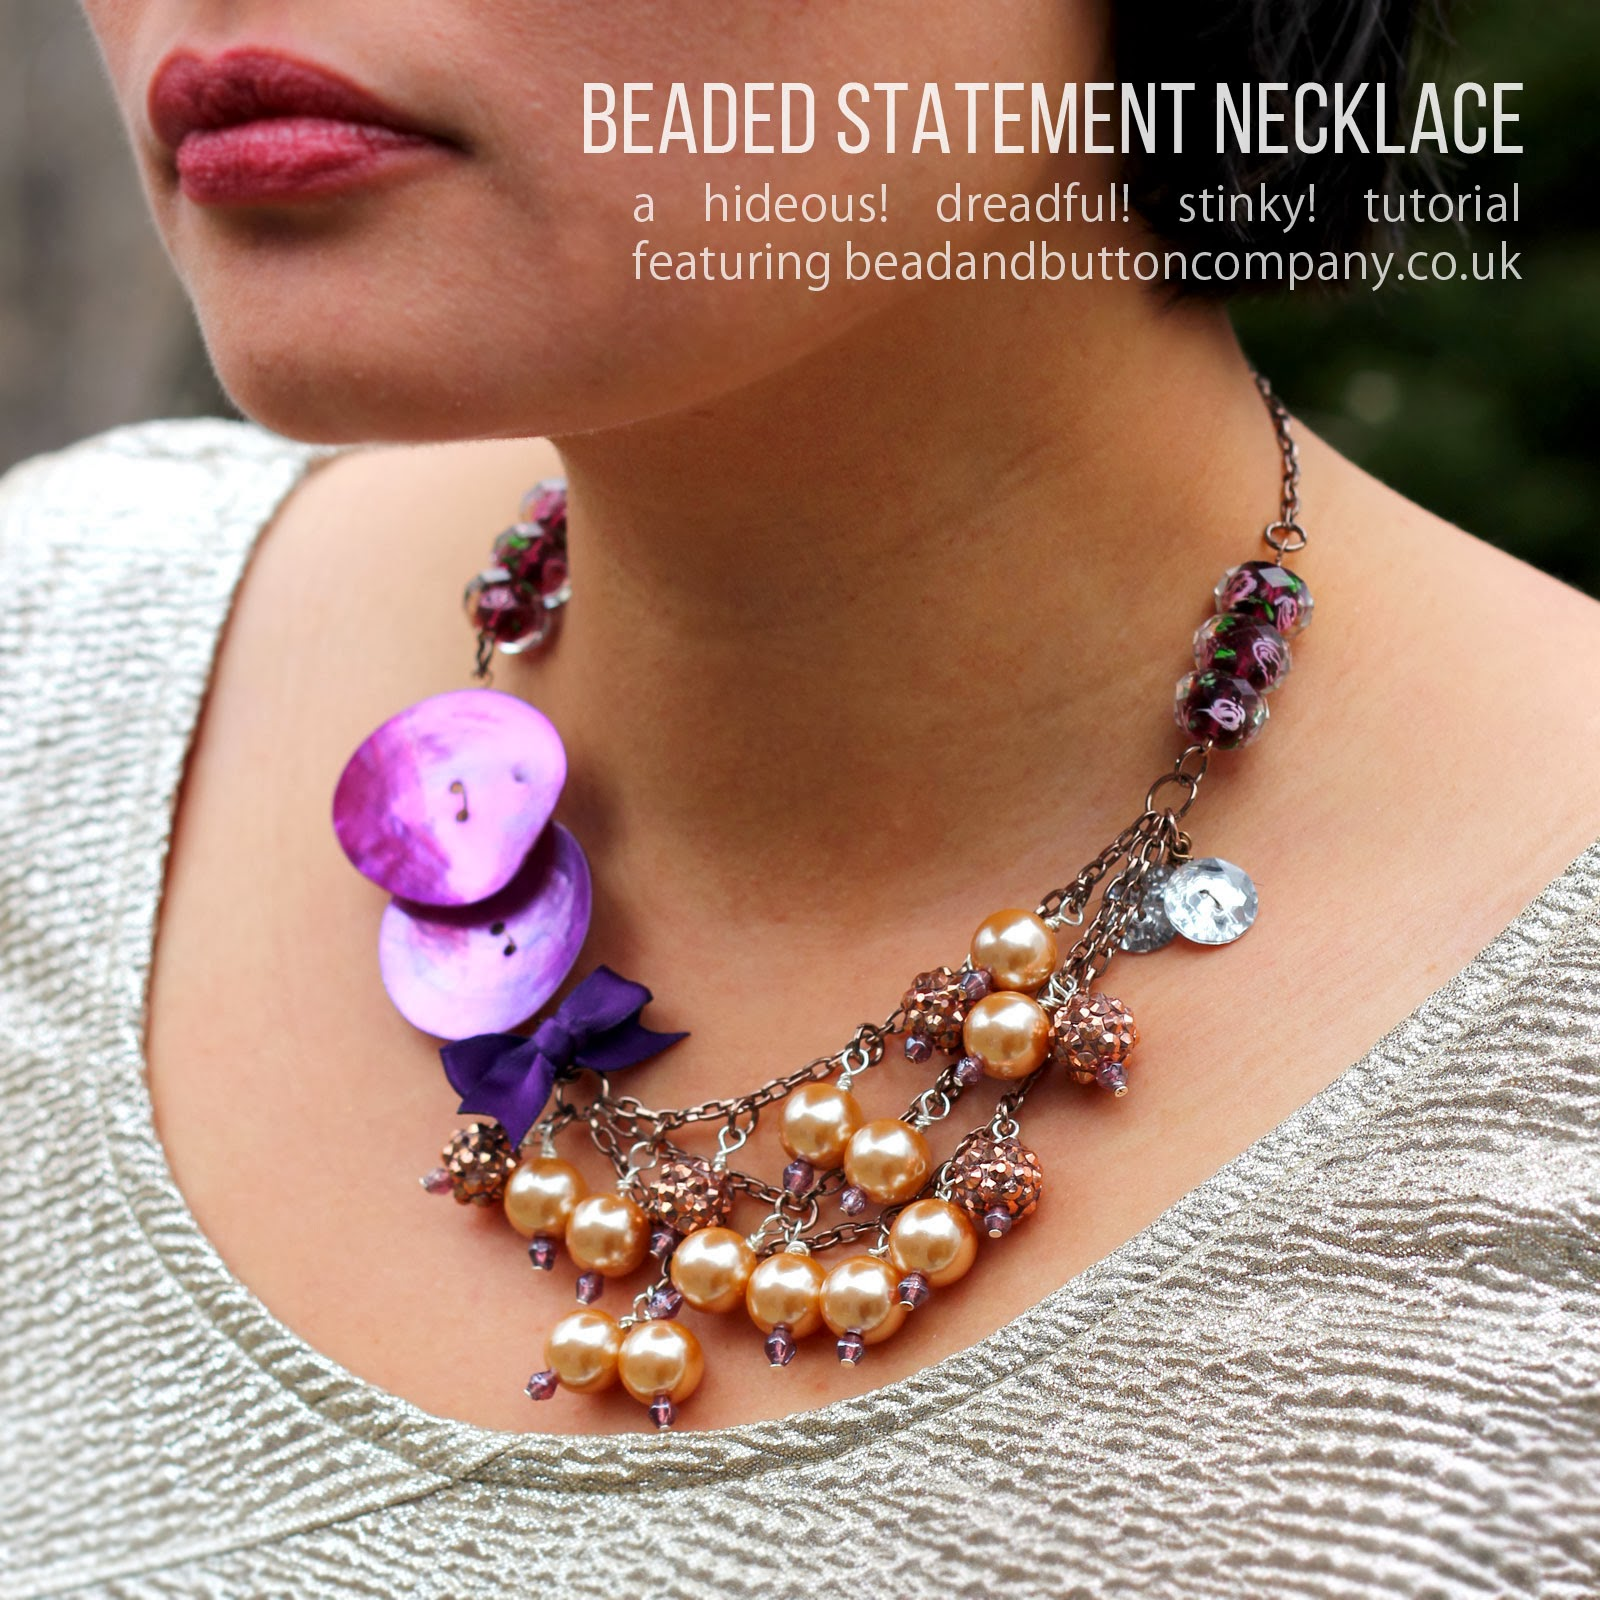 beaded statement necklace in radiant orchid